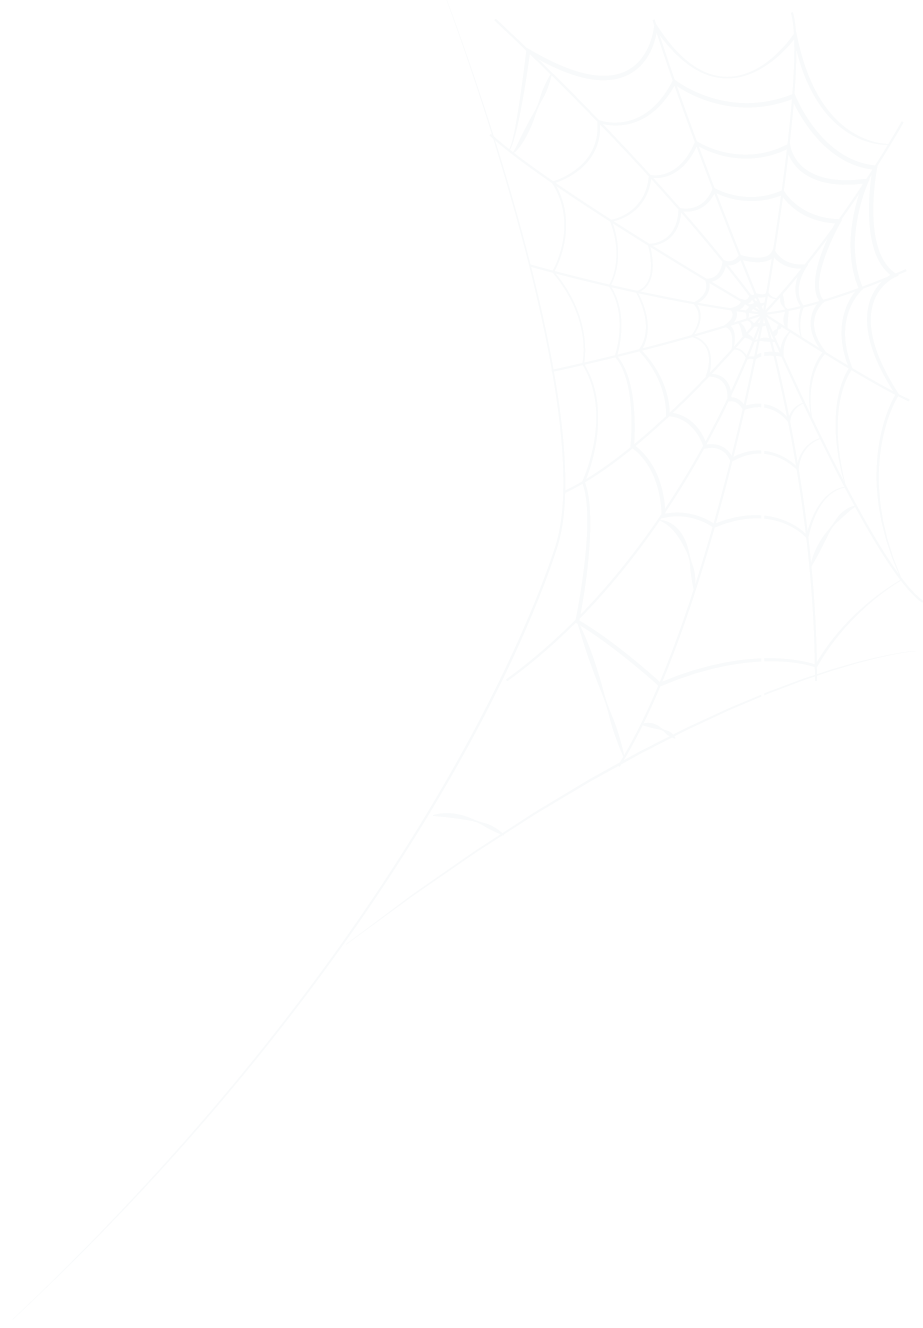 Cobweb and Spider